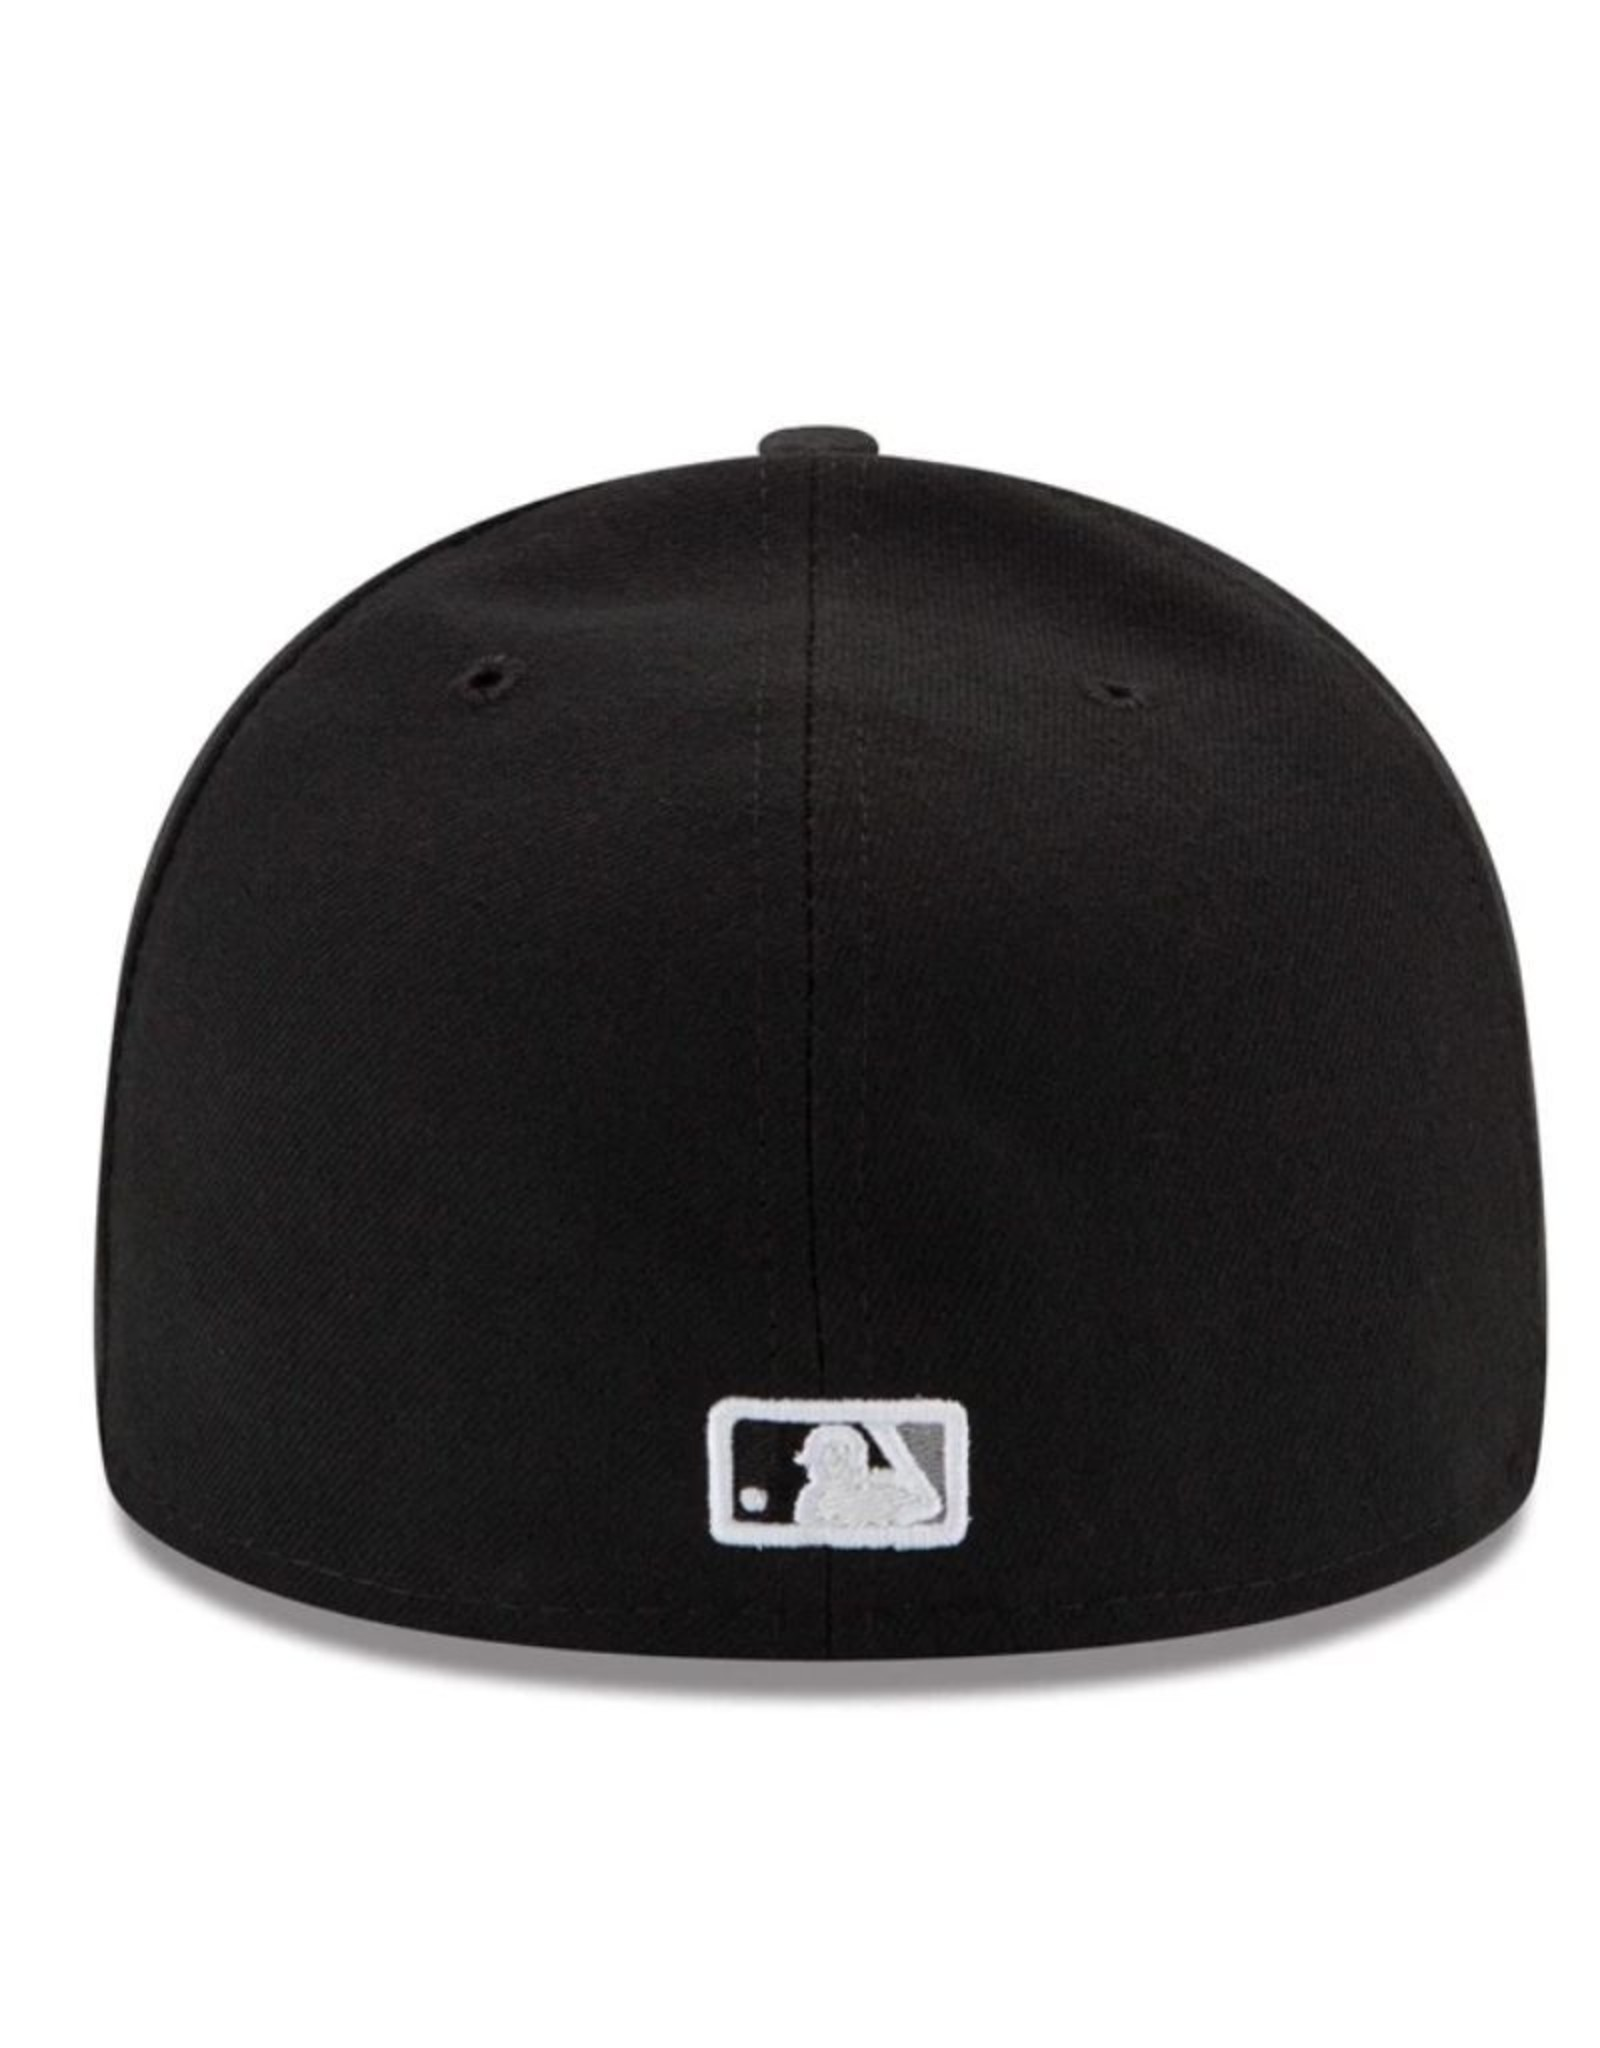 New Era On-Field Authentic 59FIFTY Home Hat Chicago White Sox Black